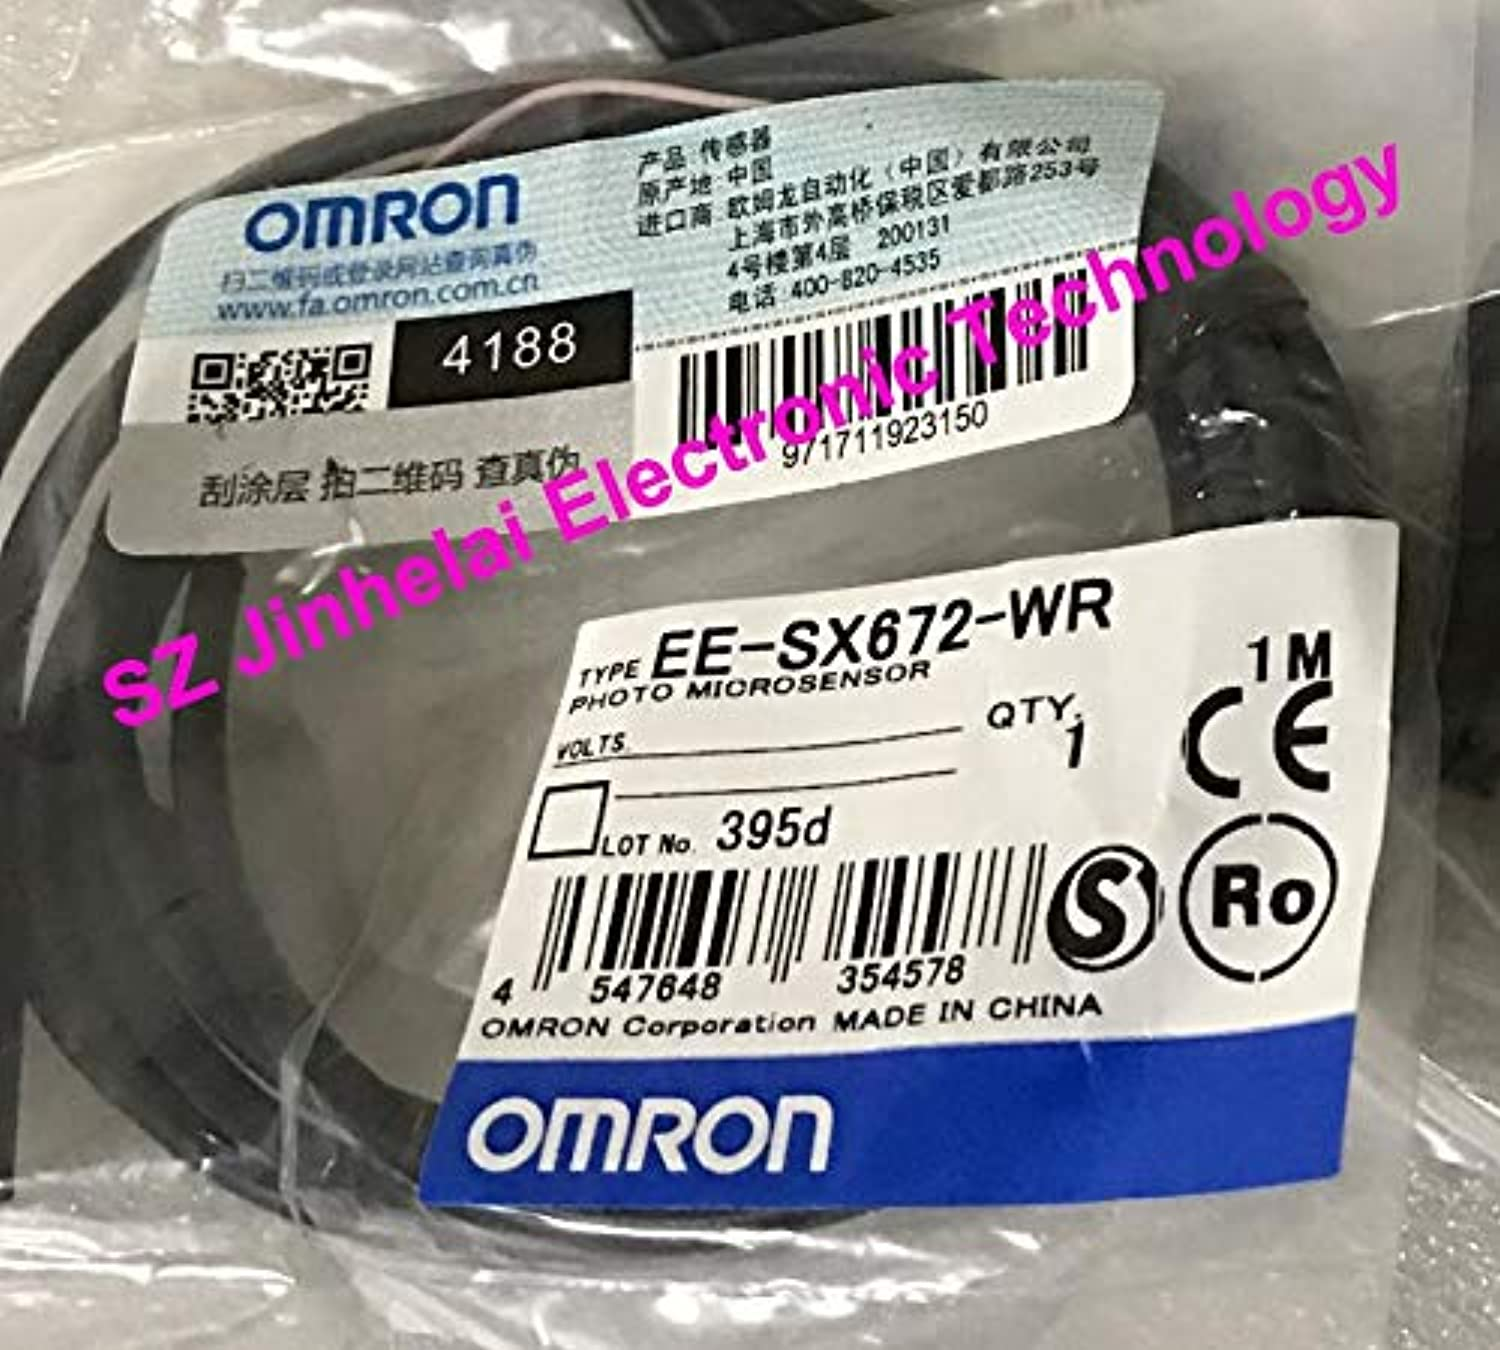 EESX672WR, EESX672PWR New and Original OMRON Photo Micro Sensor 1M  (color  EESX672PWR)